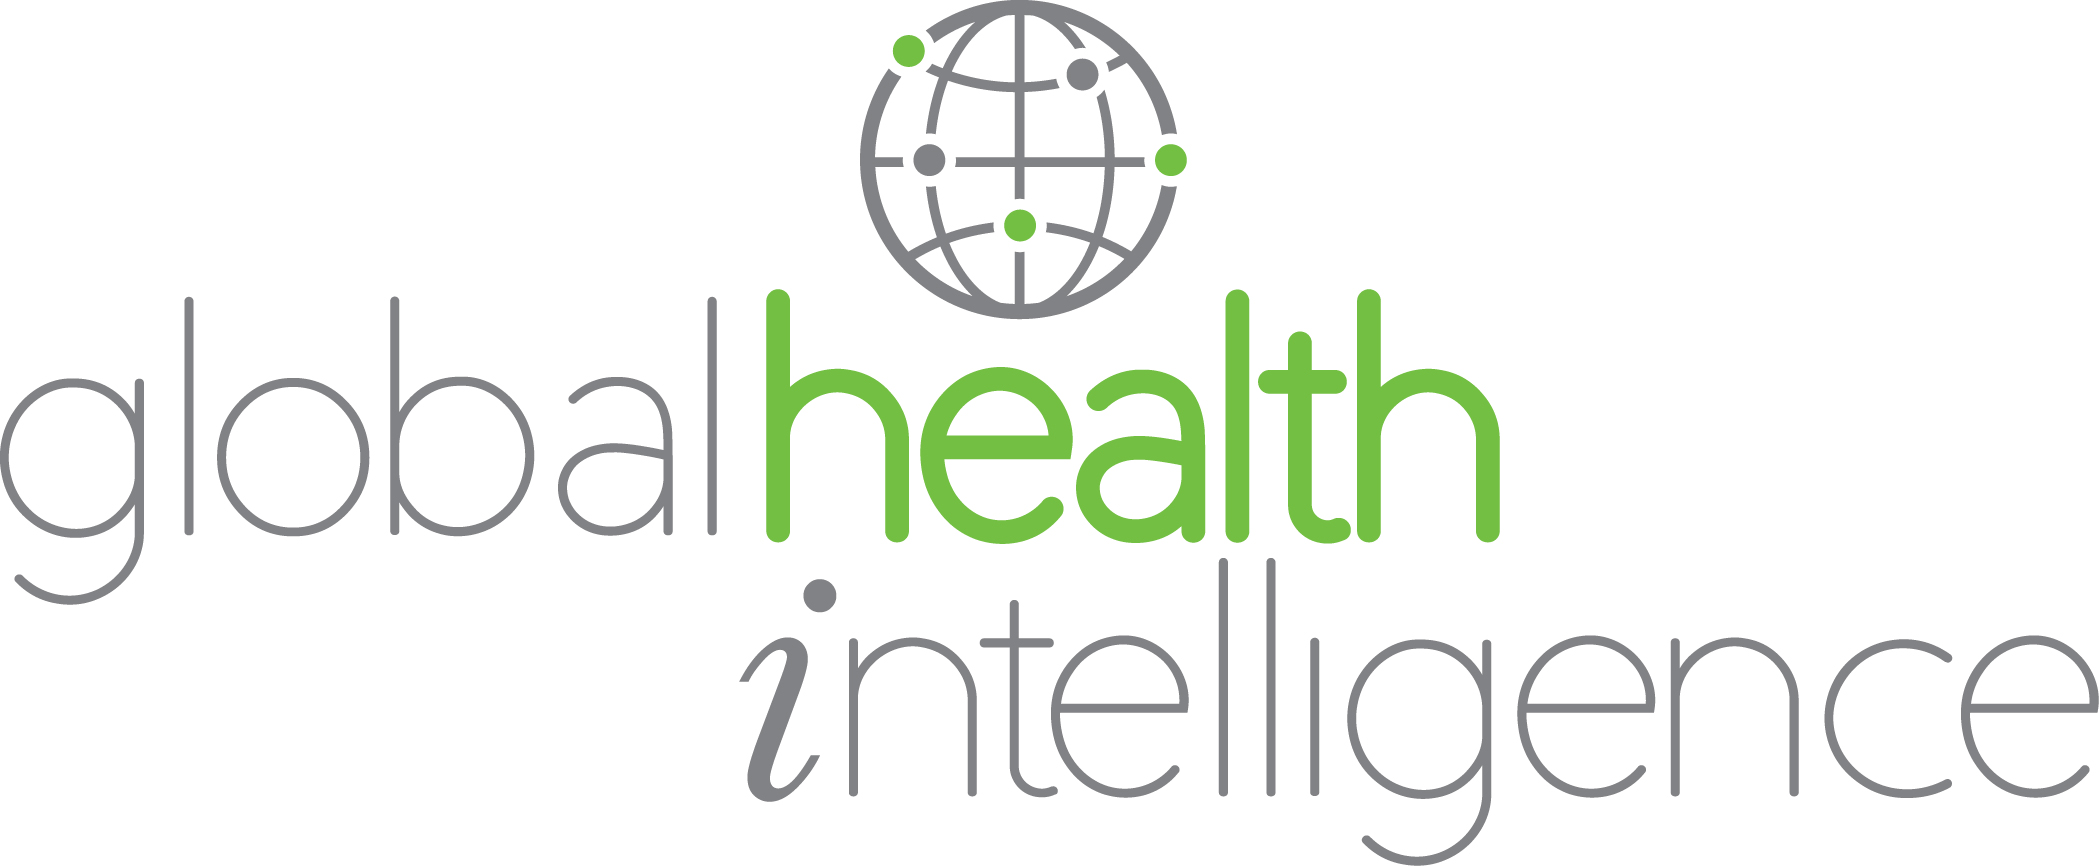 Global Health Intelligence